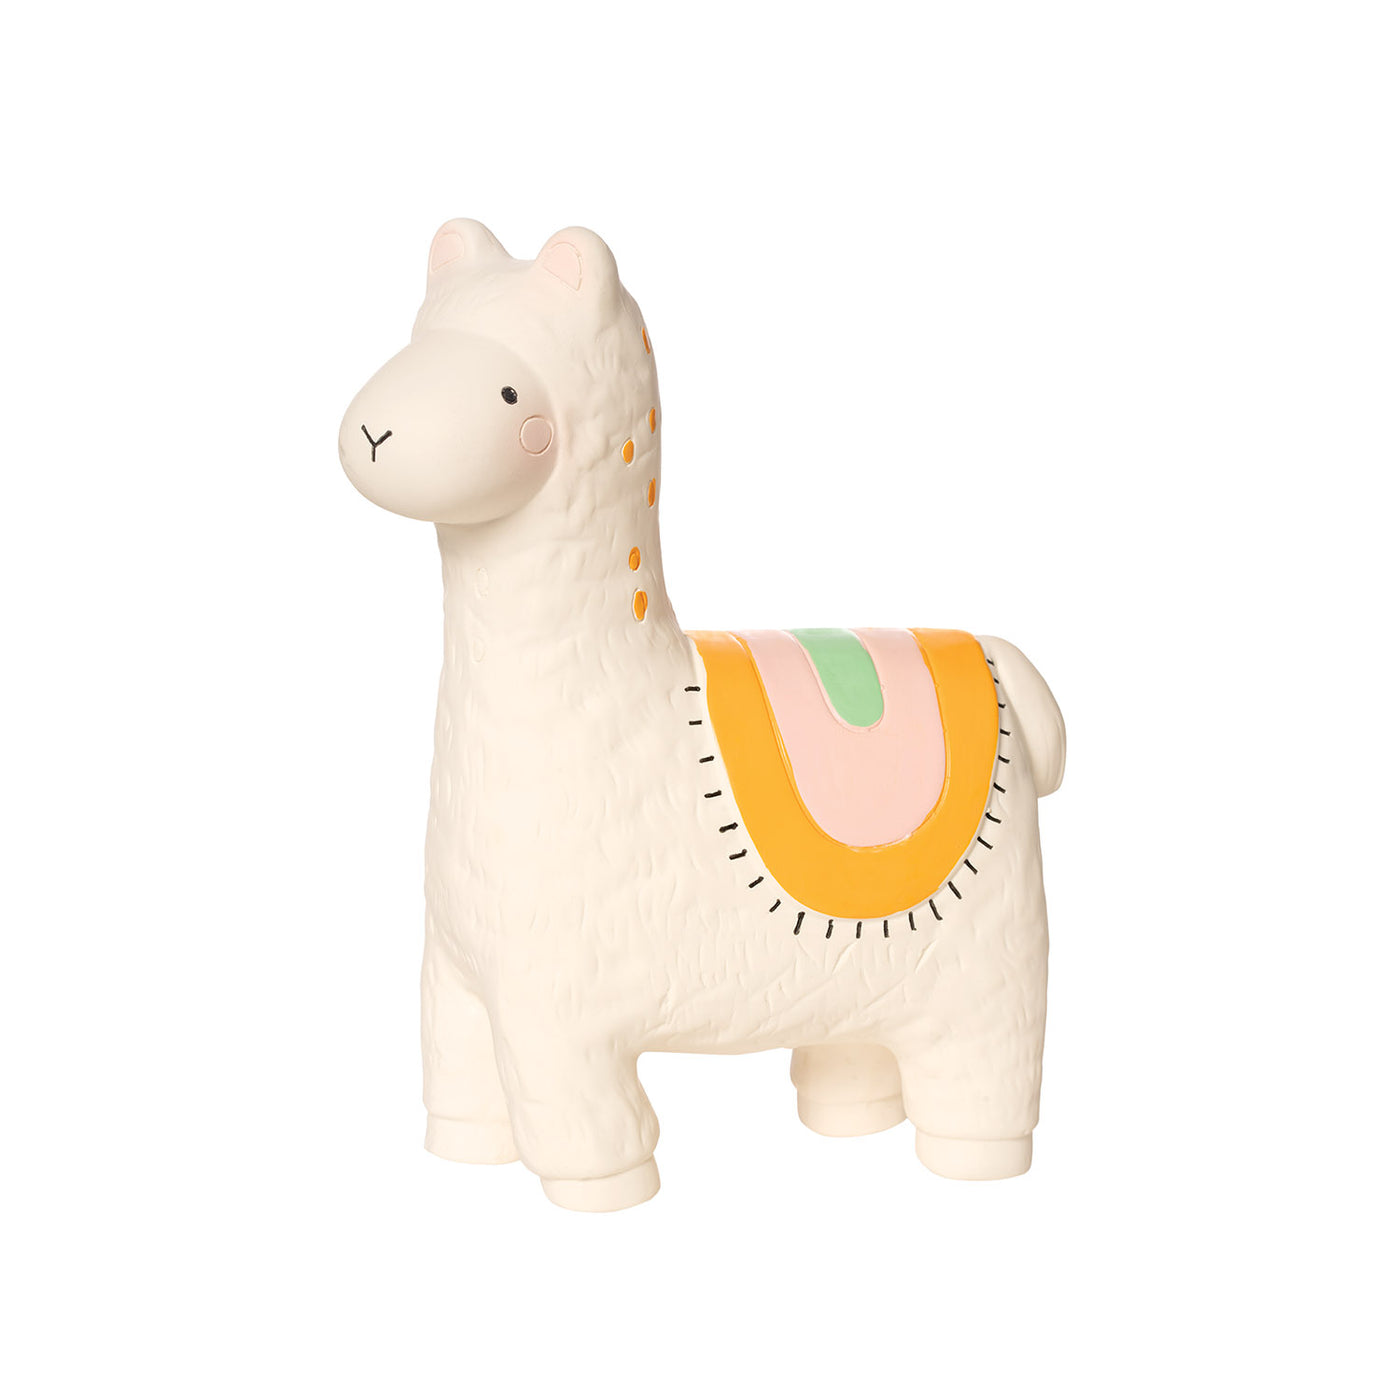 Fruity Paws Rubber Teether Lili Llama - Manhattan Toy